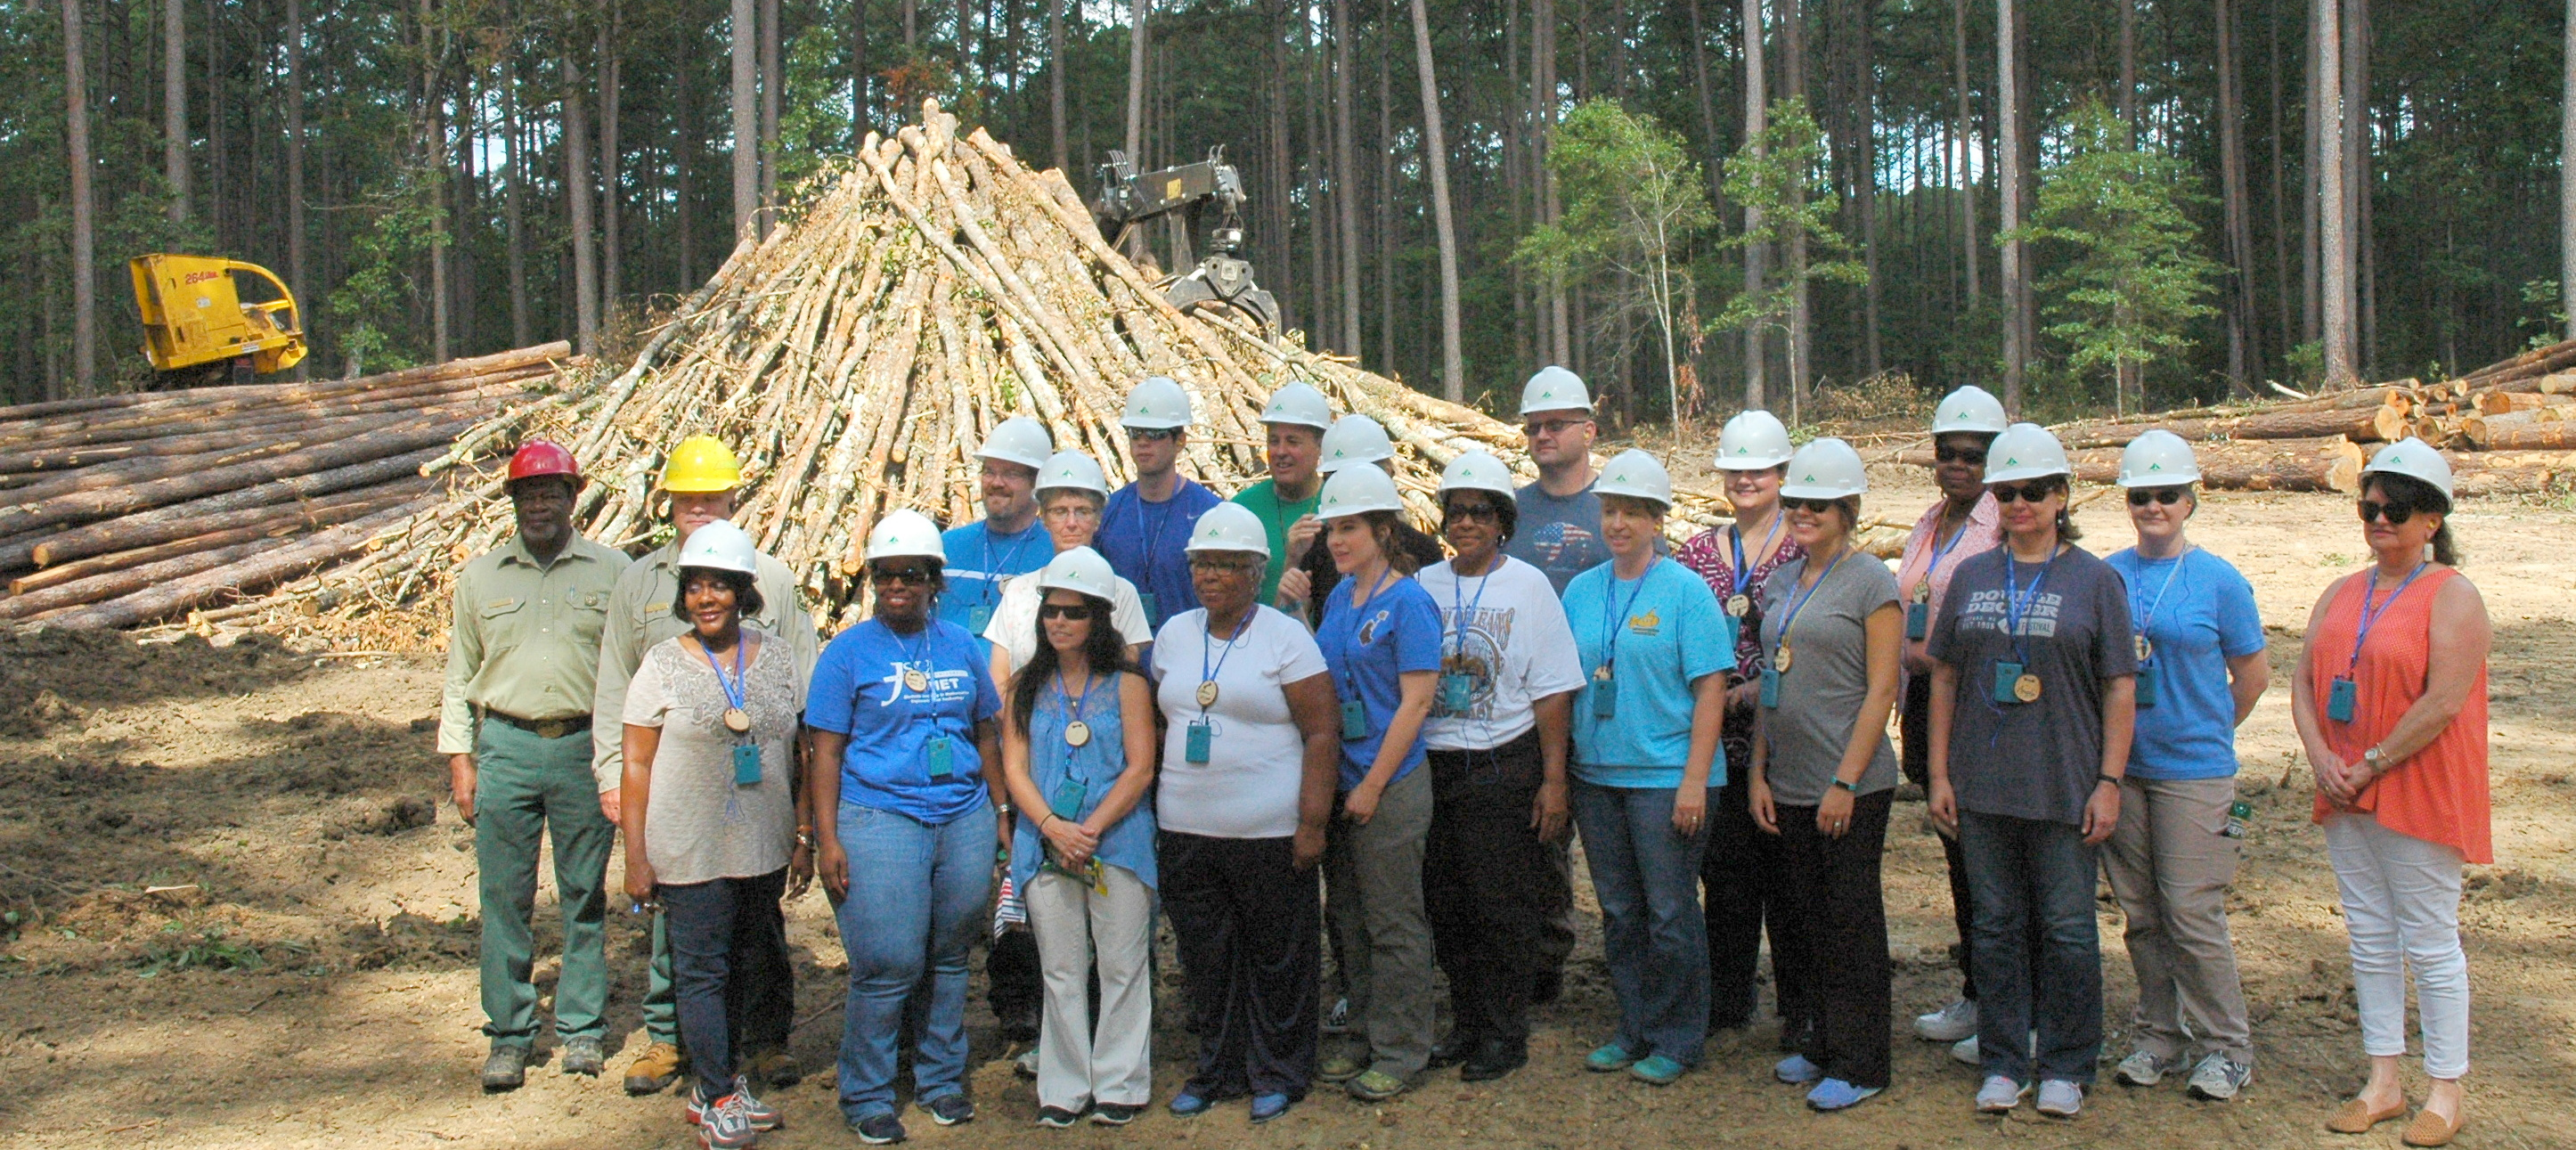 Teachers standing in front of logged wood pile and logging equipment